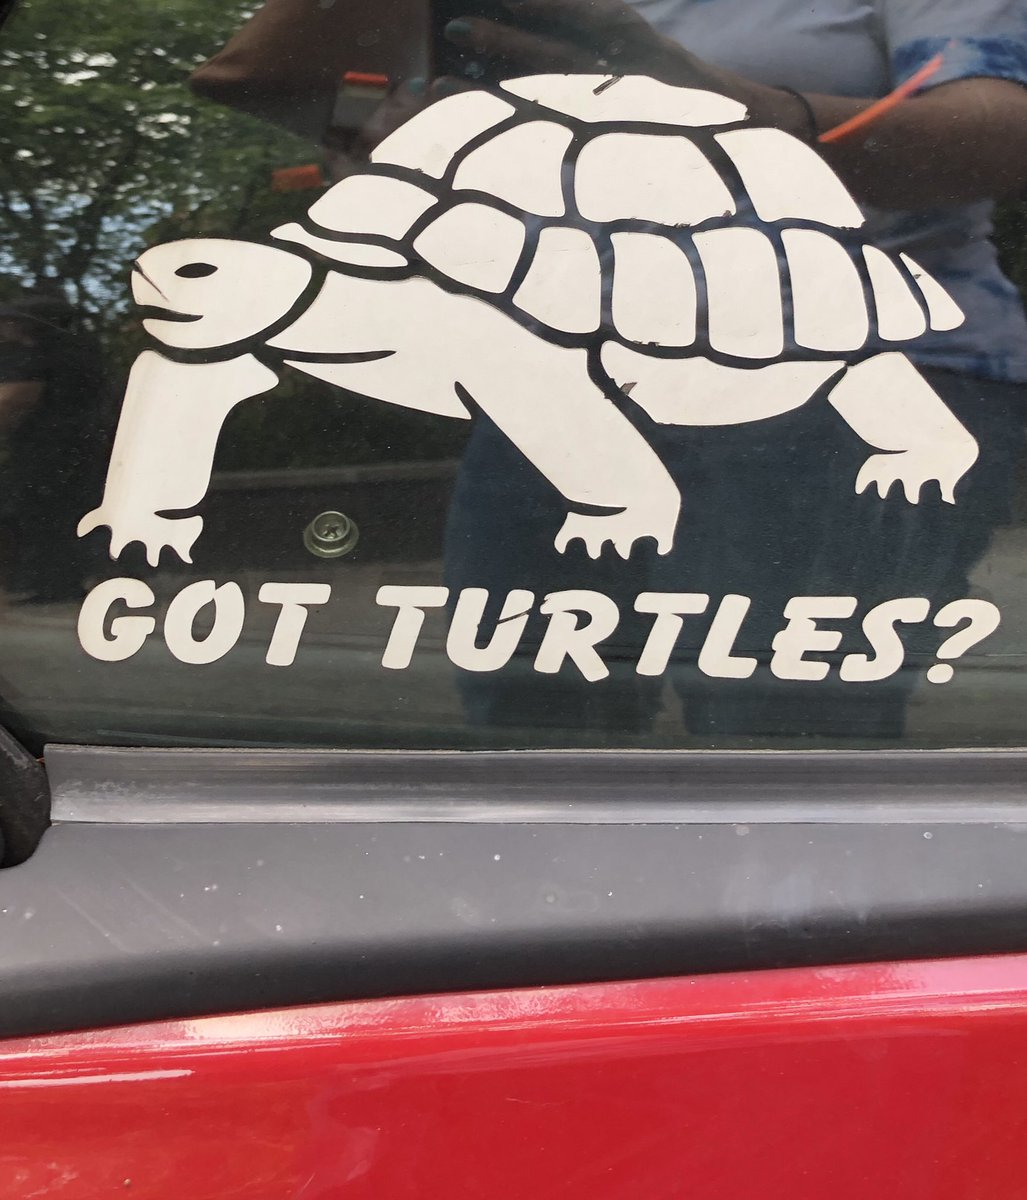 Just saw this car sticker... <a target='_blank' href='https://t.co/IphYkb6gqM'>https://t.co/IphYkb6gqM</a>